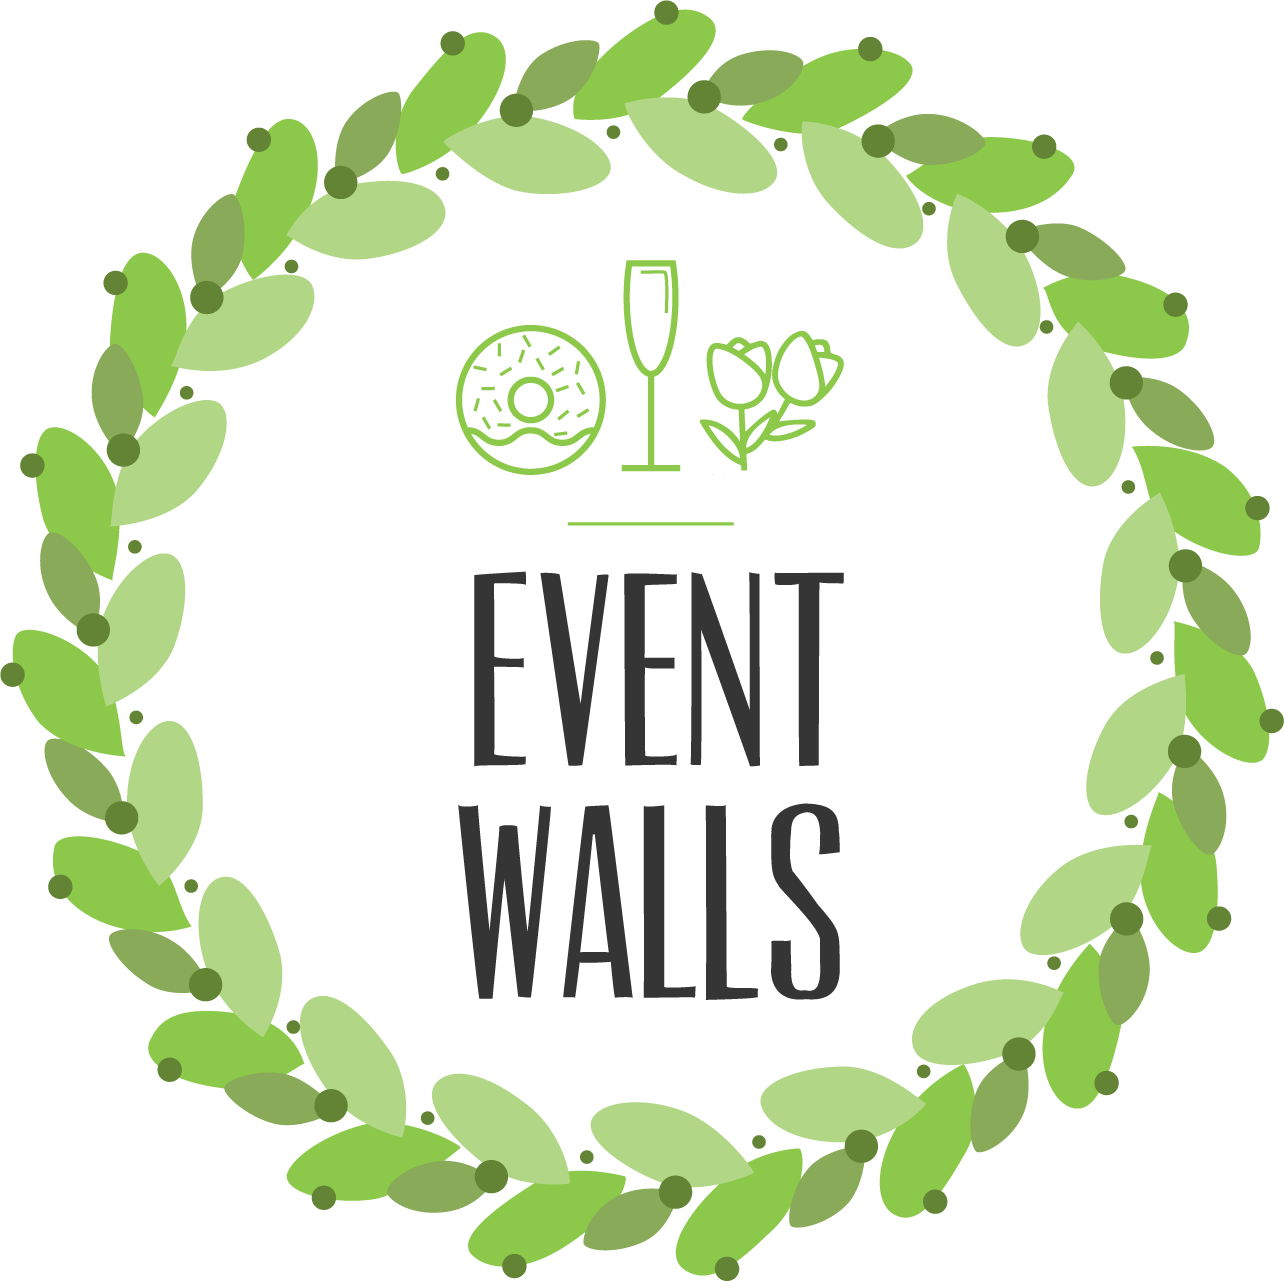 Event Walls - Prosecco Wall's, Flower Wall's and Donut Walls!